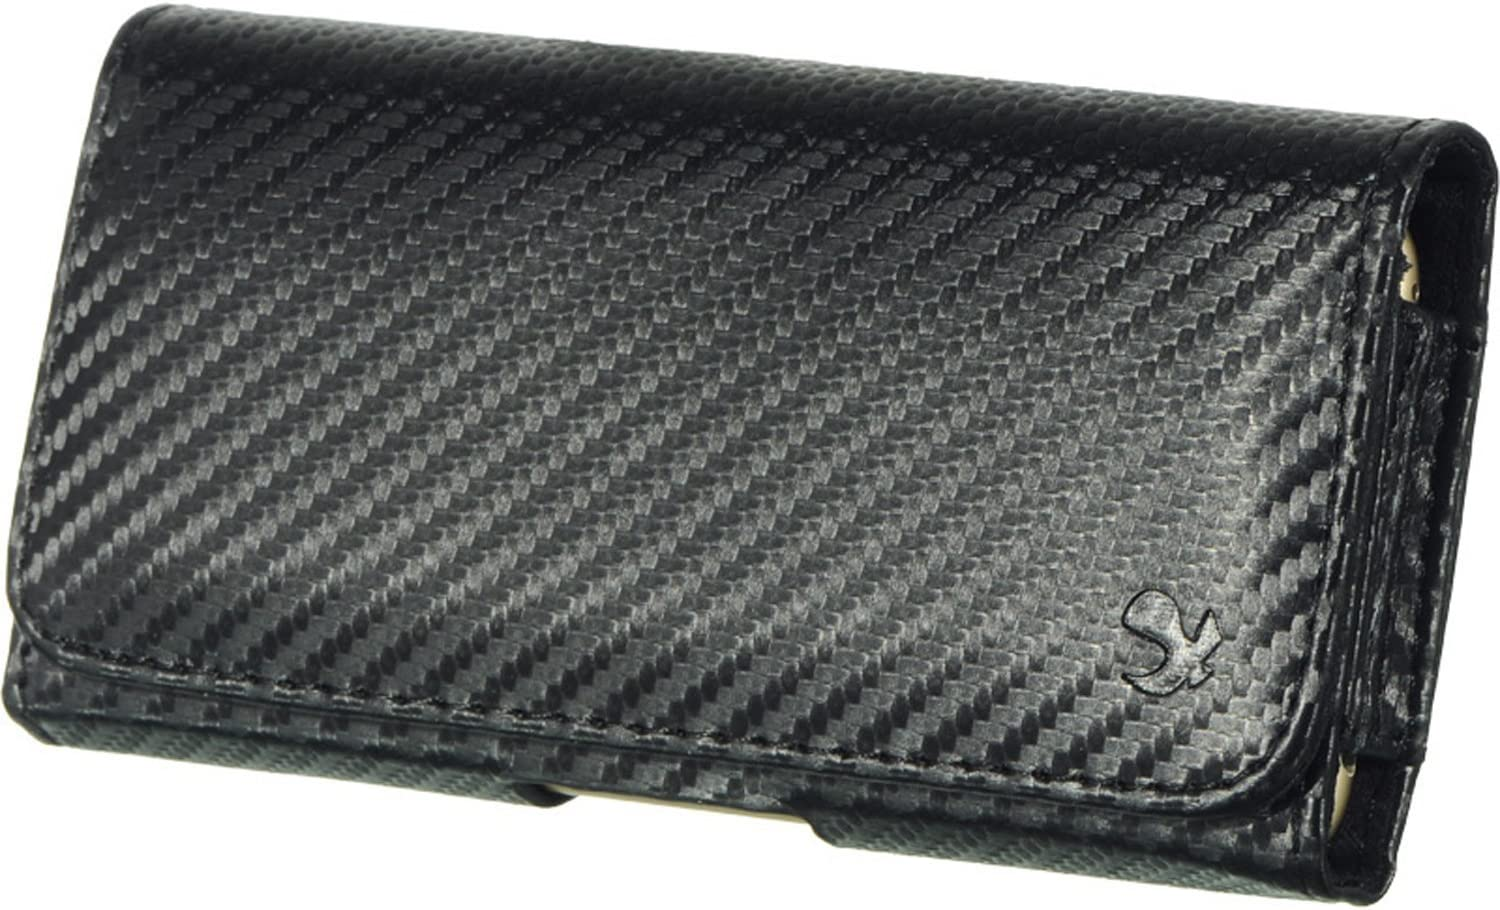 Carbon Fiber Horizontal Holster Belt Clip Carrying Case for OnePlus Nord N10 5G, Nord N100, 8T Plus 5G, 8T, Nord, 8, 8 5G